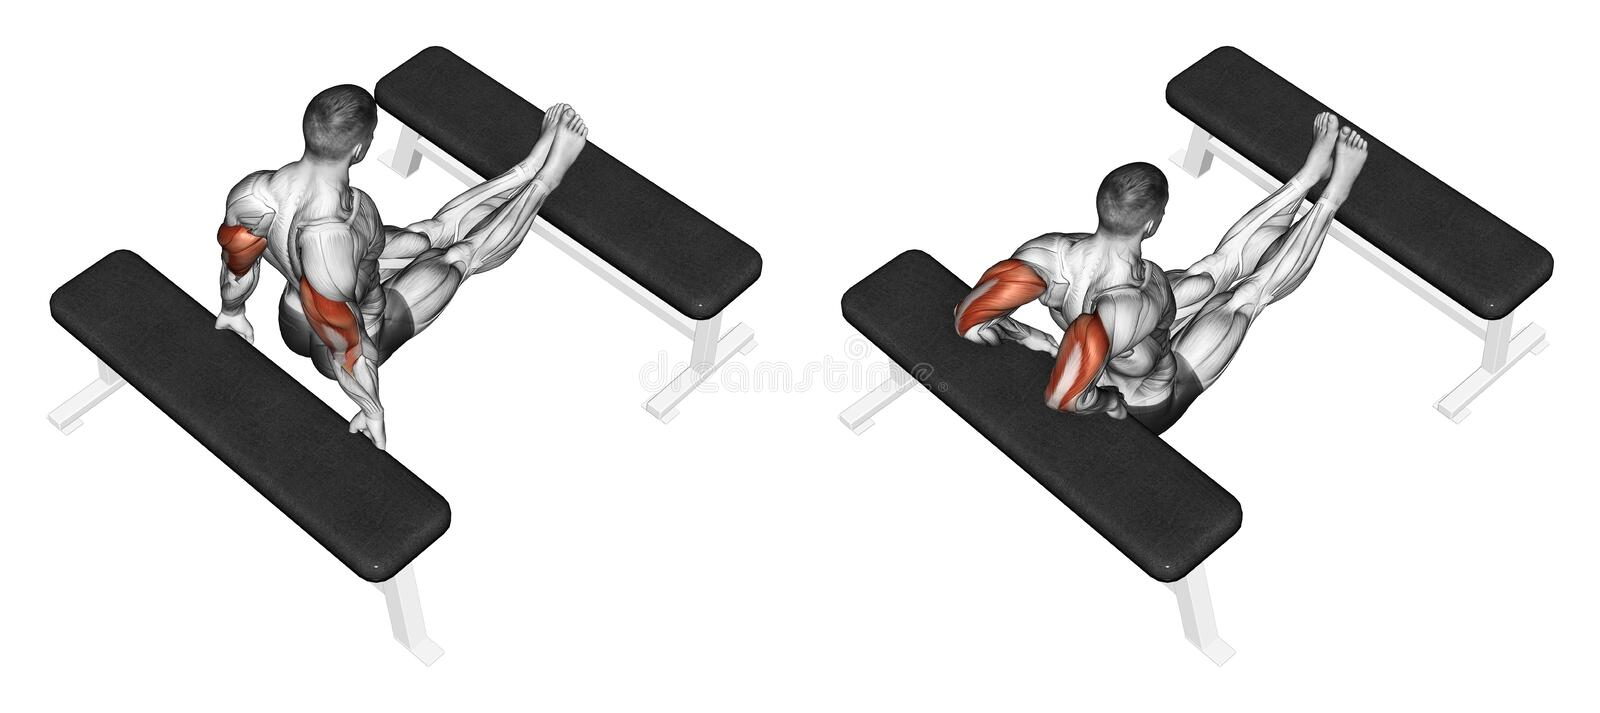 Exercising. Squeezing triceps back to the bench. Squeezing triceps back to the bench, lying on the bench. Exercising for bodybuilding. Target muscles are marked royalty free illustration